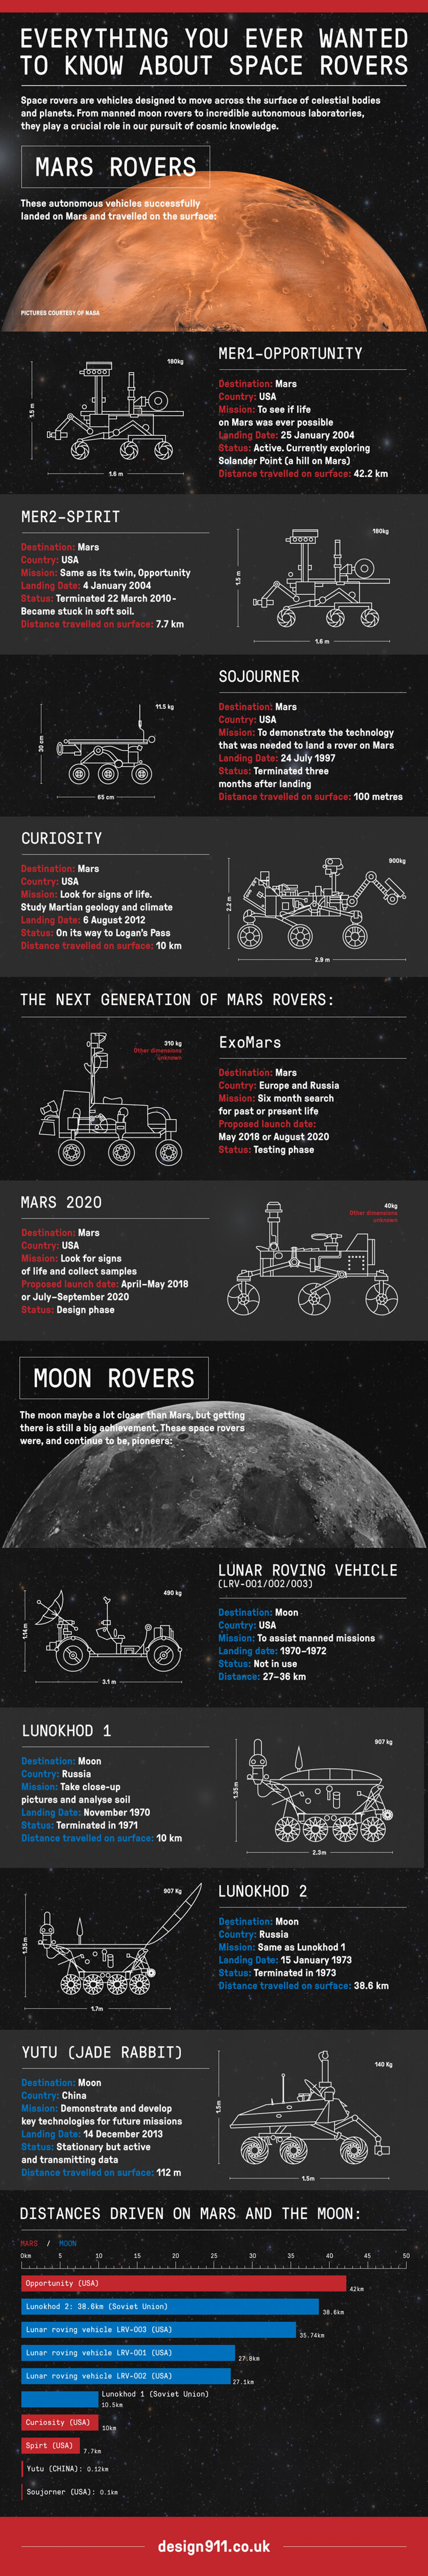 everything-you-ever-wanted-to-know-about-space-rovers-infographic